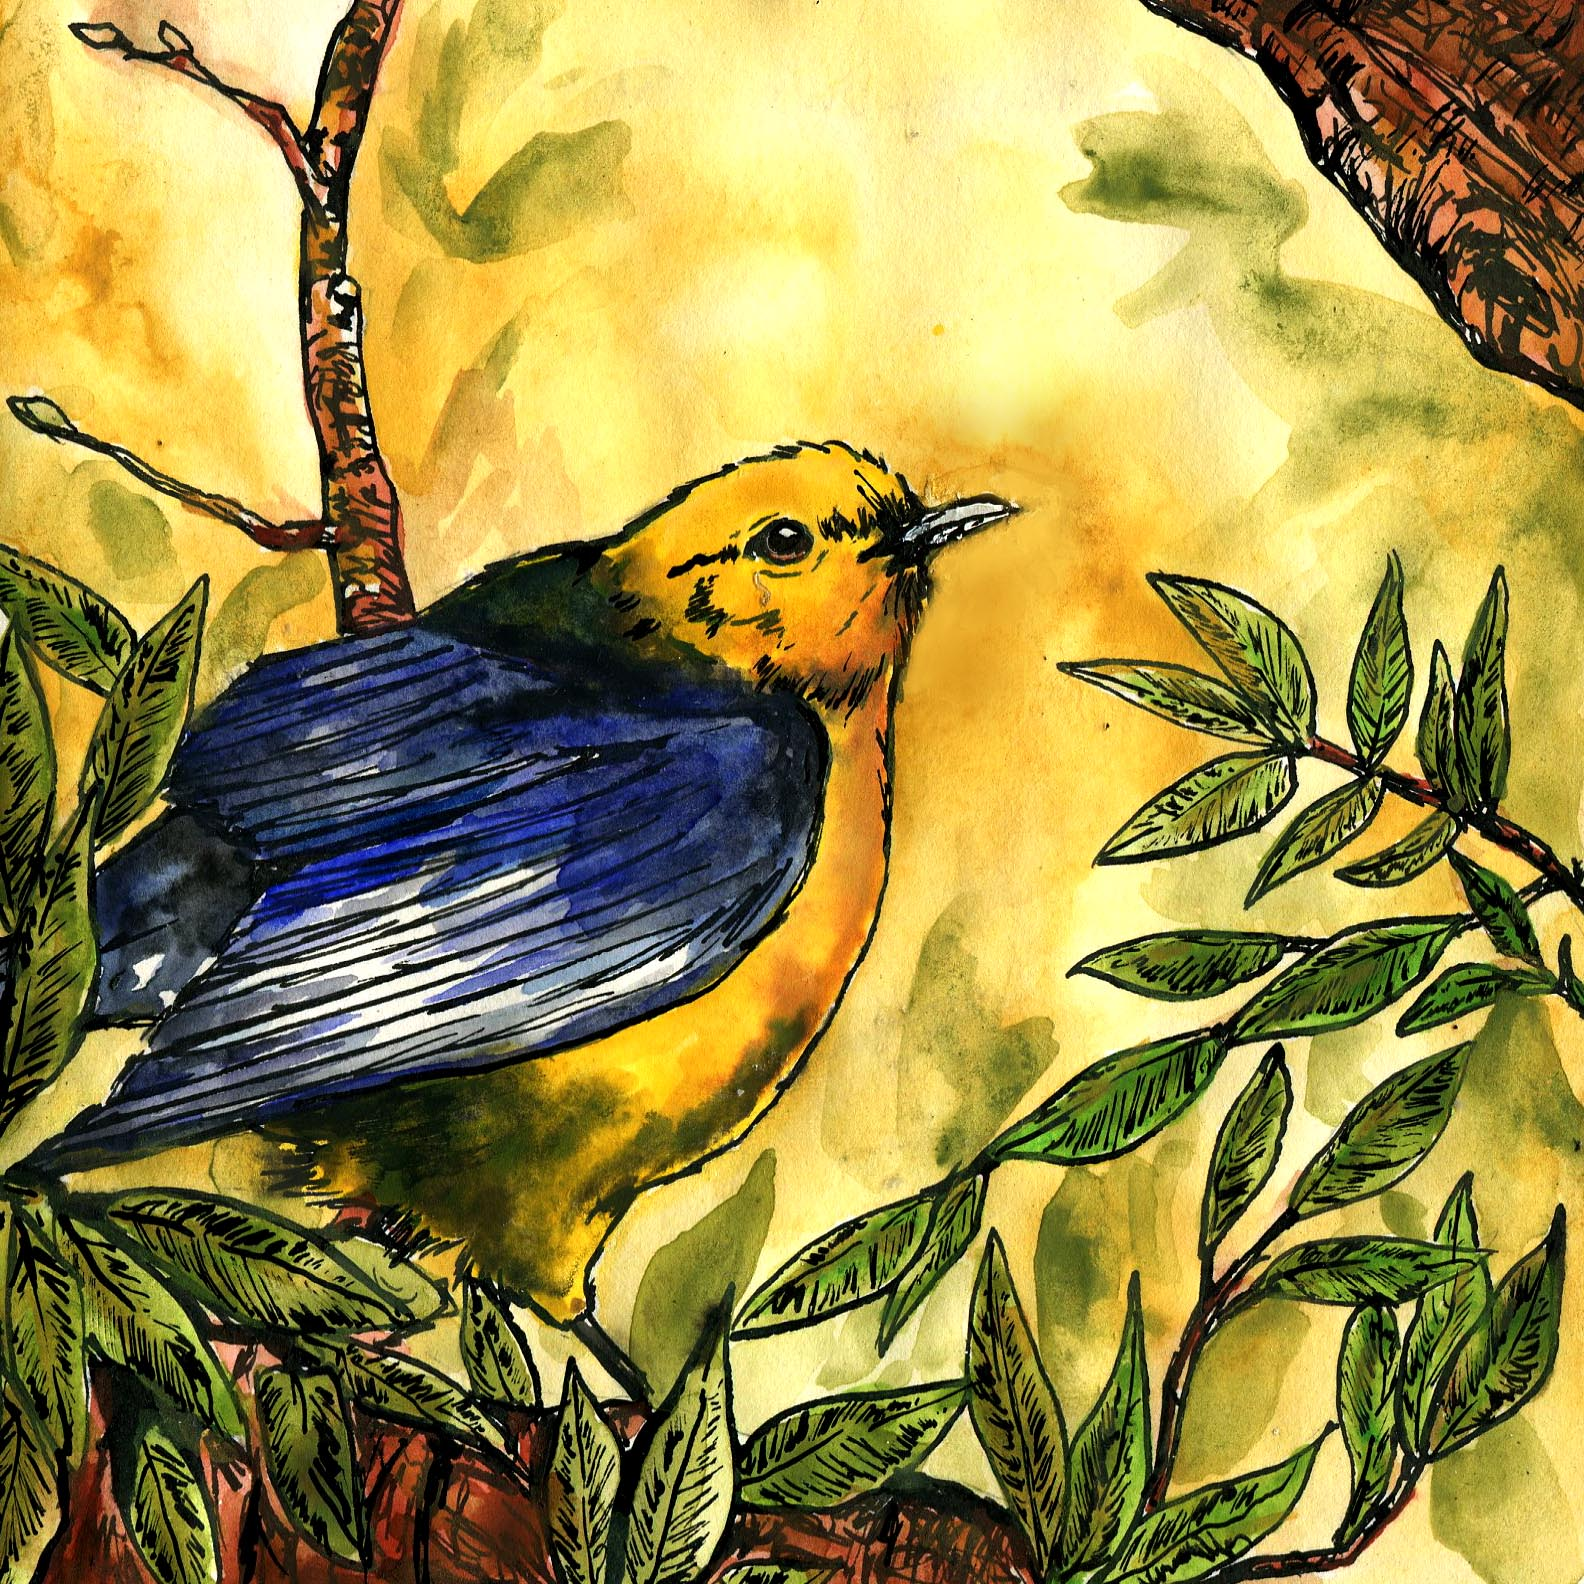 396. Prothonotary Warbler